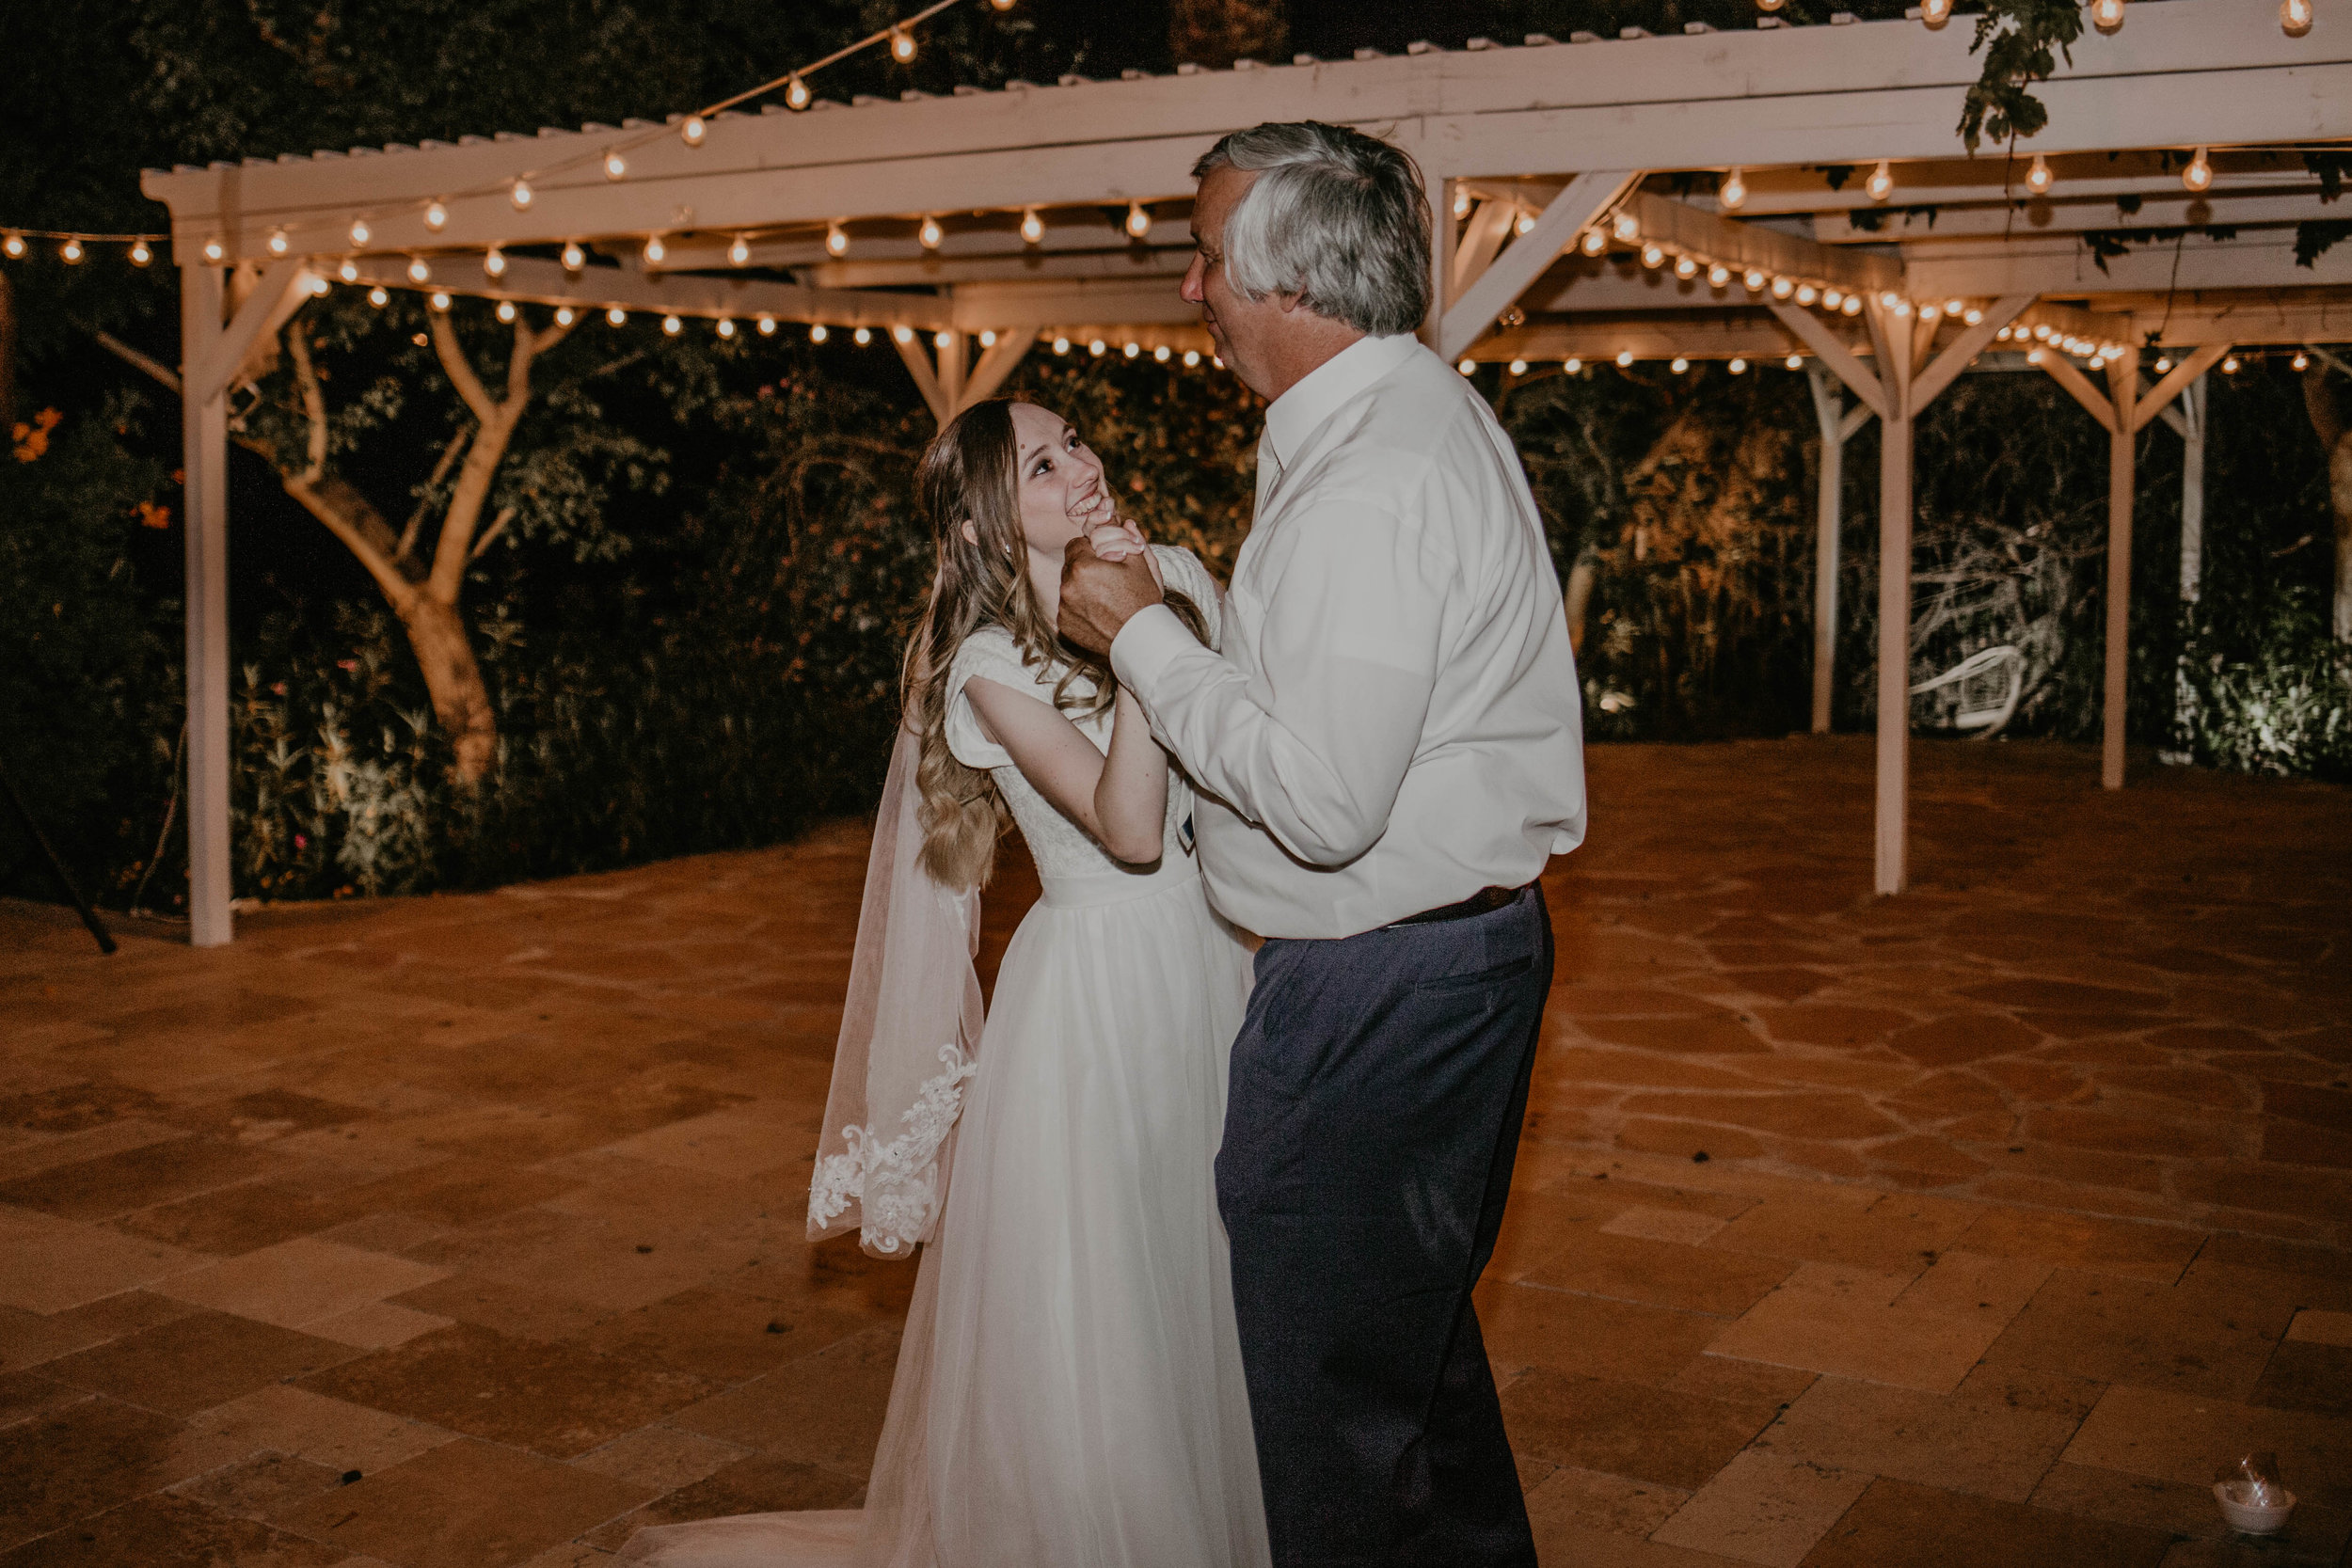 The way she looks at her dad during their 'father/daughter' dance melts my heart!!